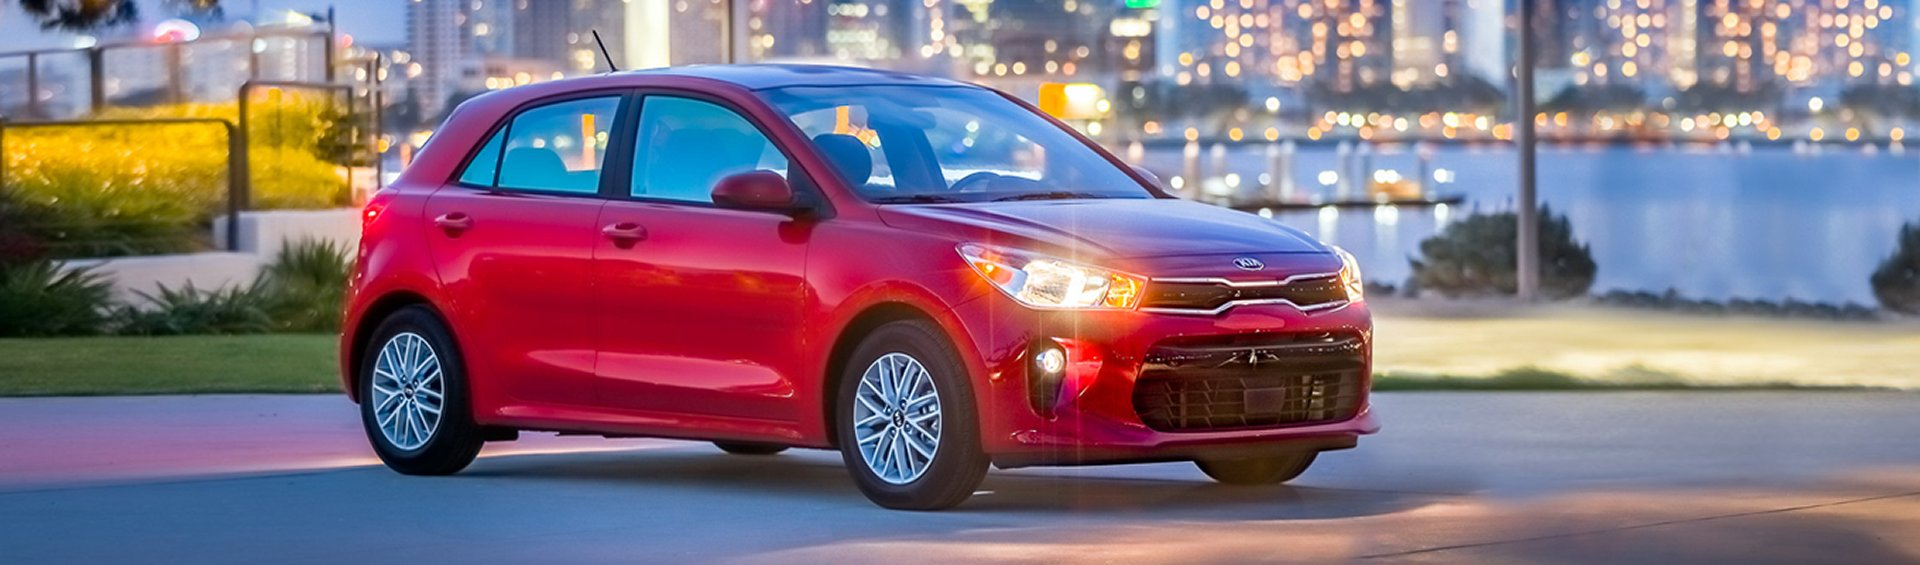 Best Compact Car In Greensboro Nc 2018 Kia Rio Battleground Remote Covers